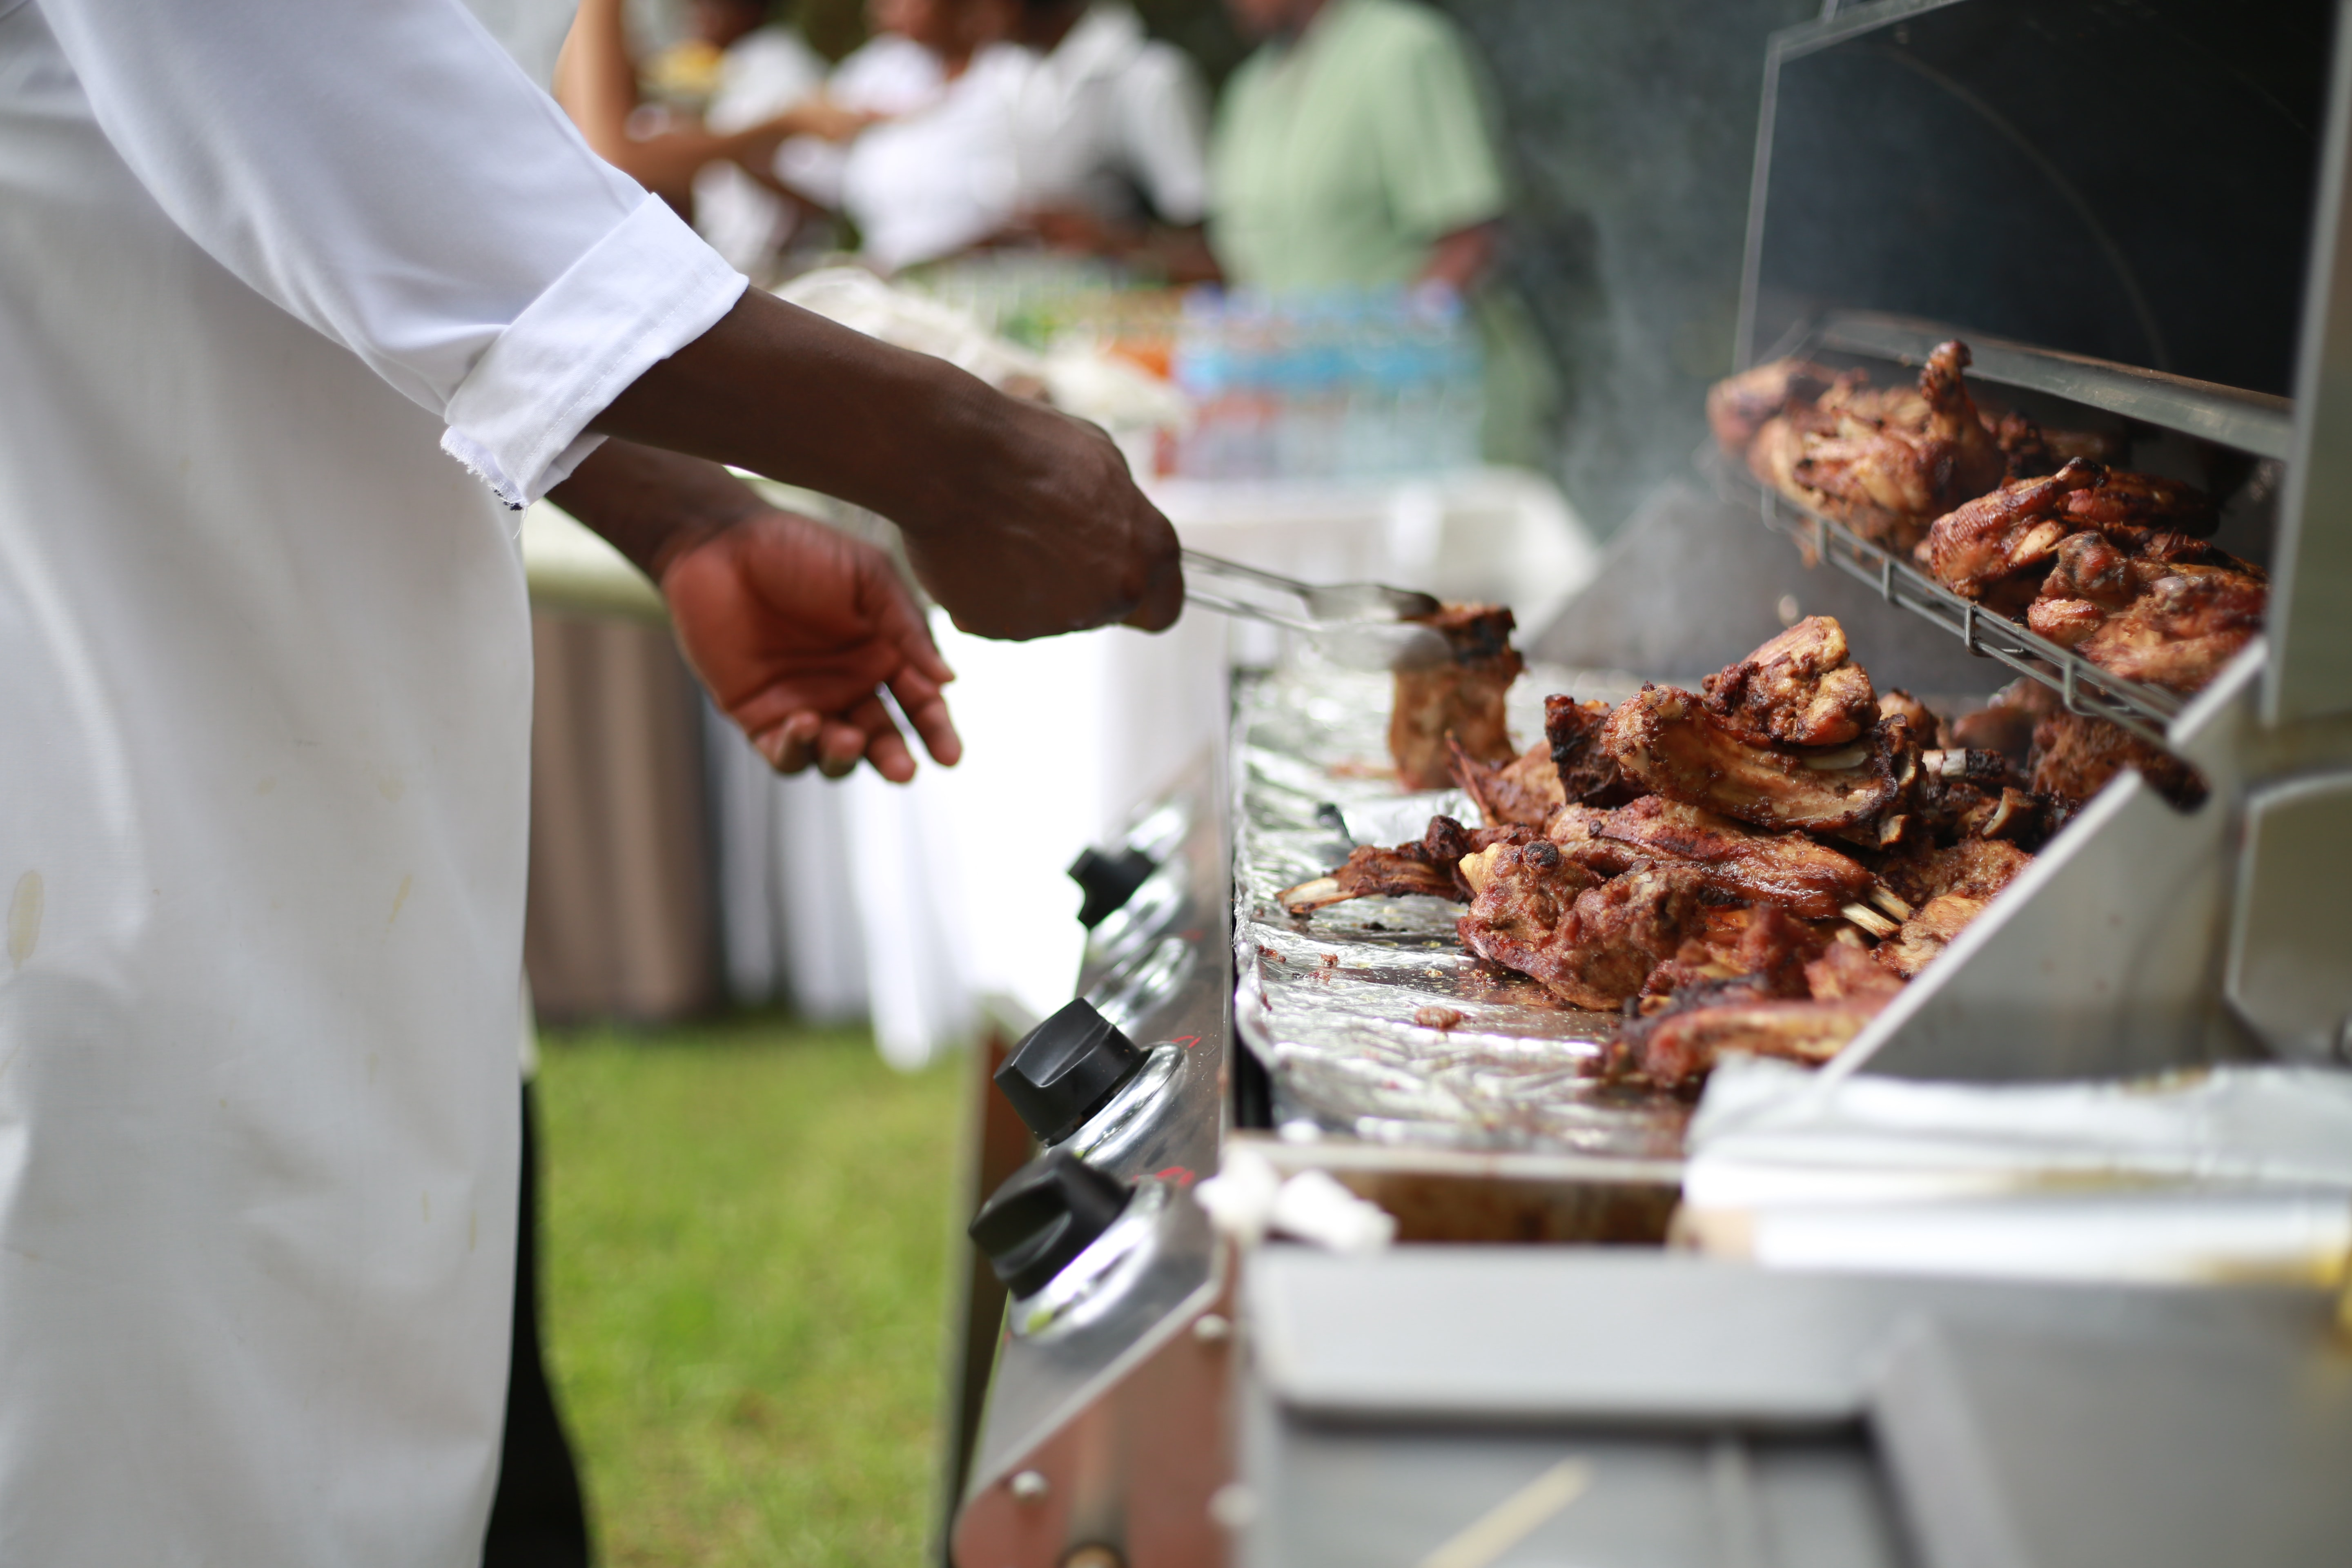 person in white shirt grilling meat